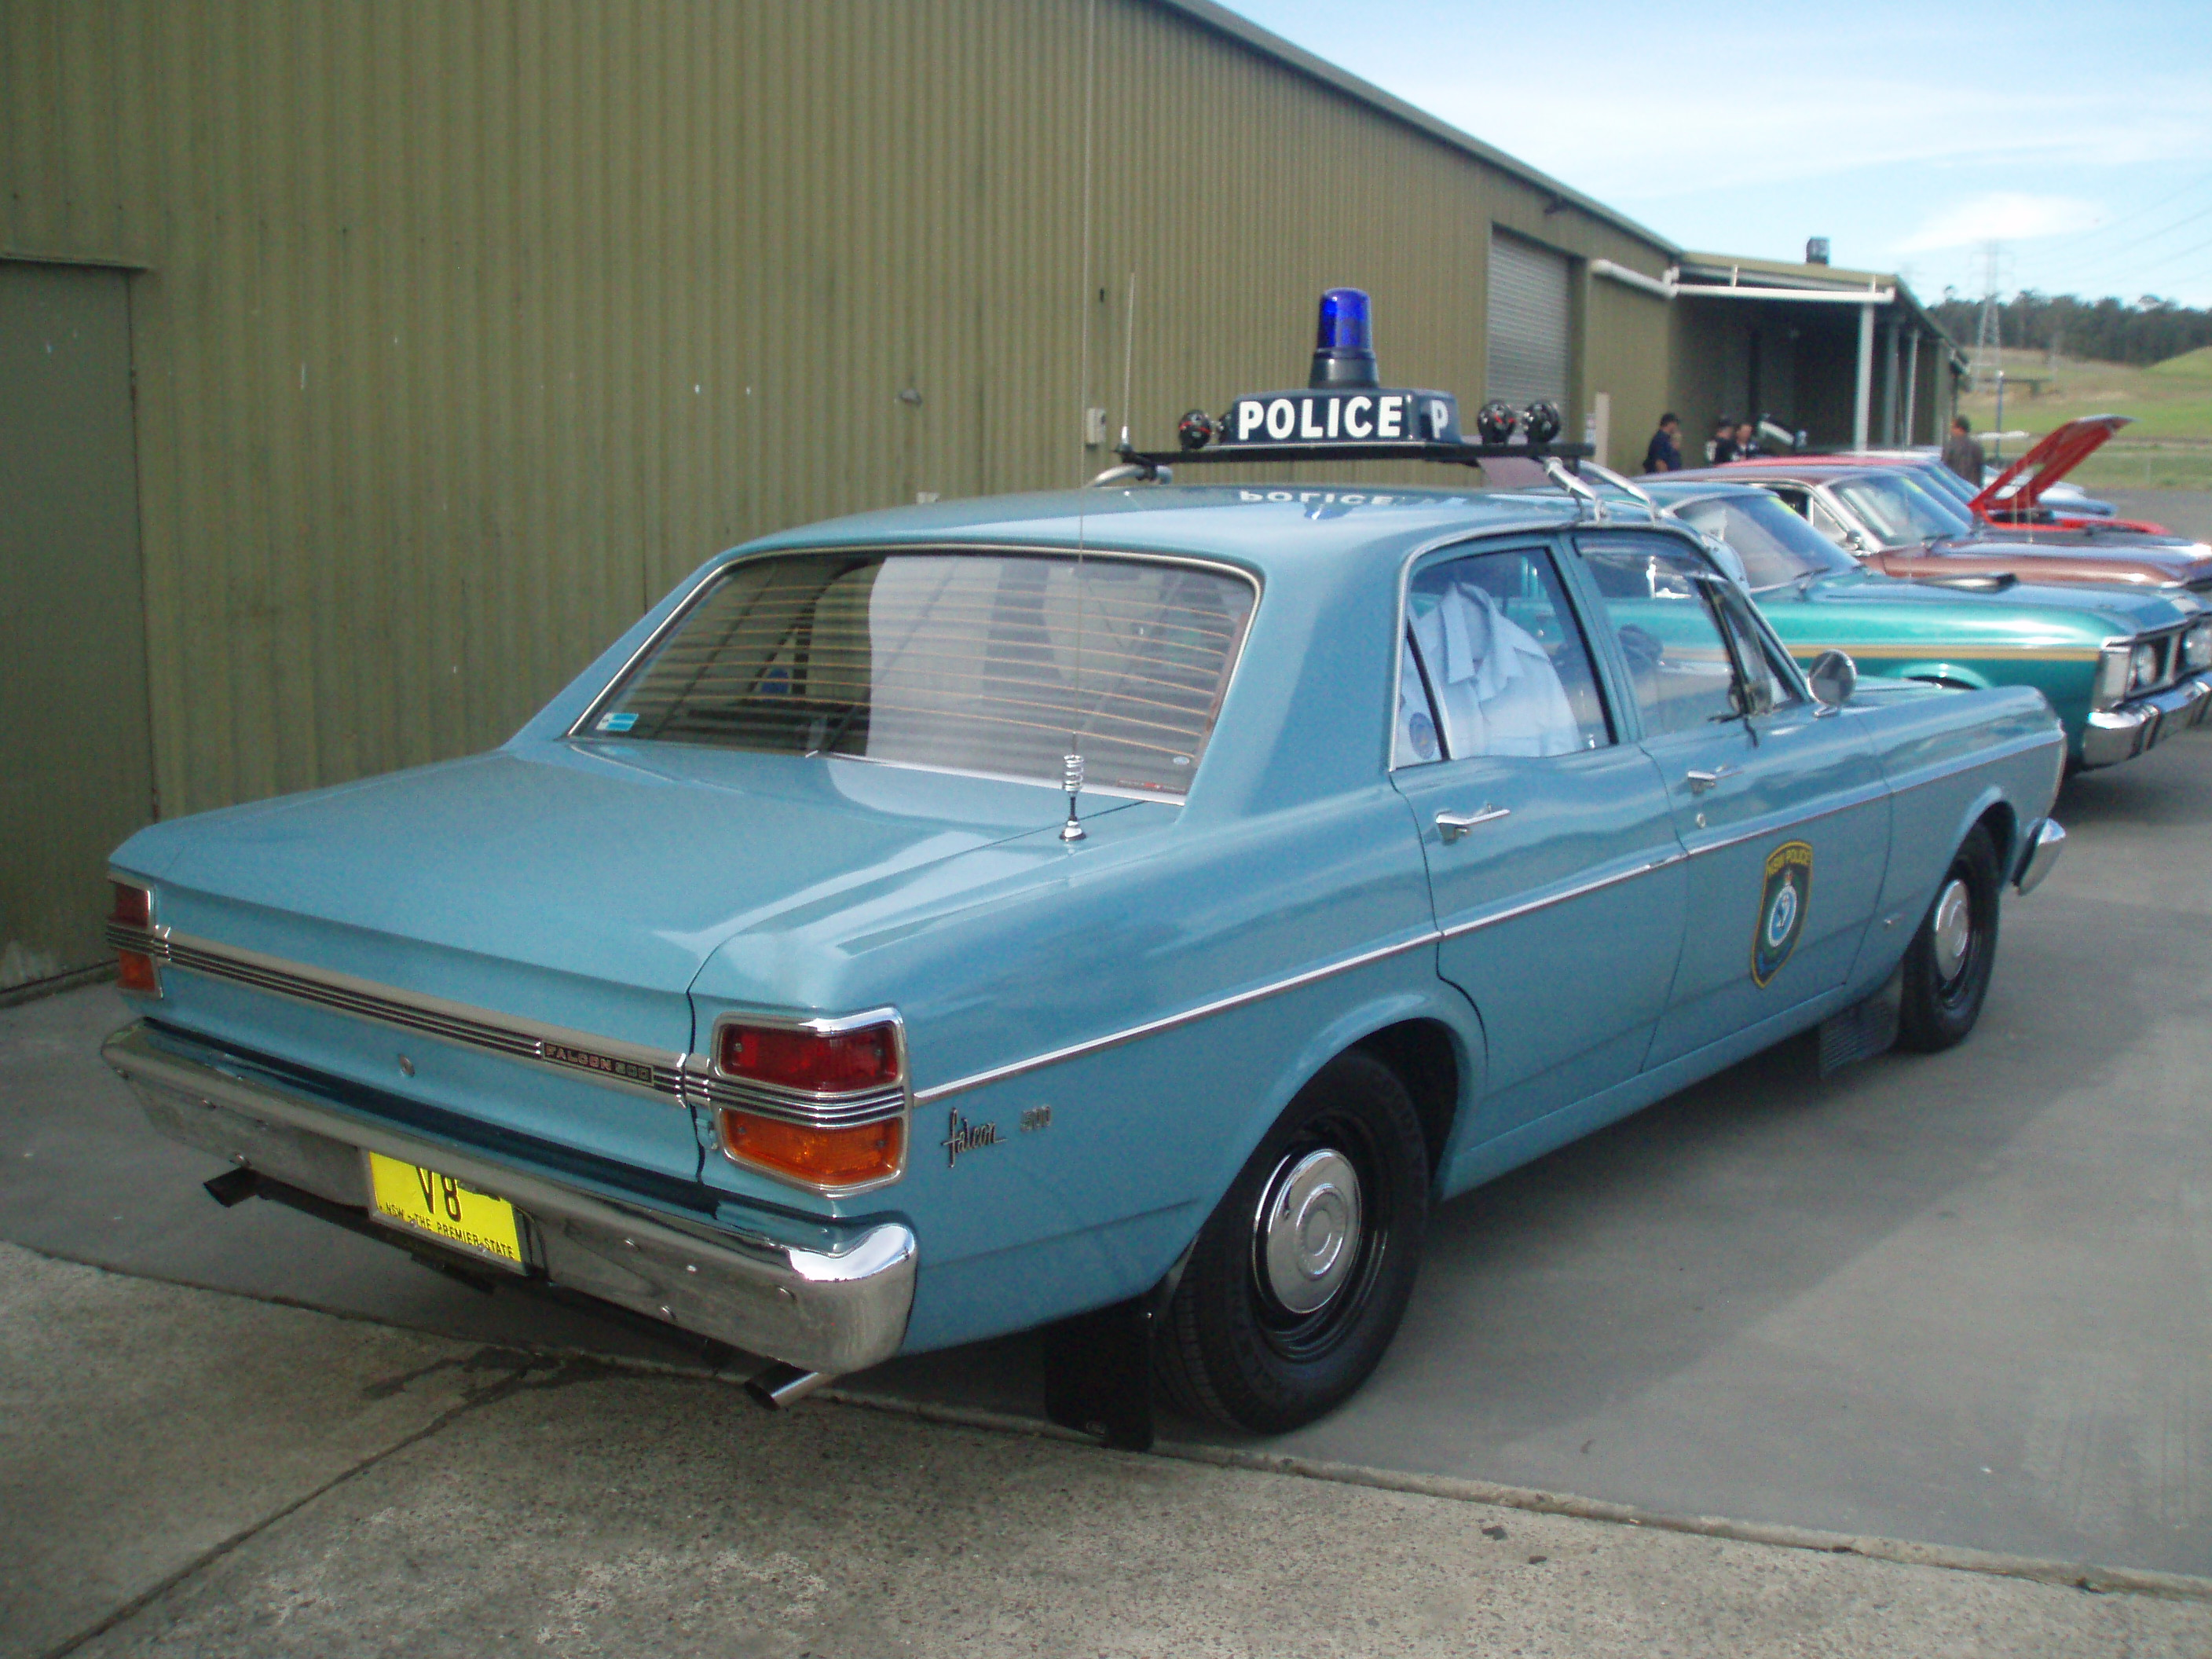 Ex Police Car Auctions >> File:1971 Ford XY Falcon 500 - NSW Police (4973161112).jpg - Wikimedia Commons